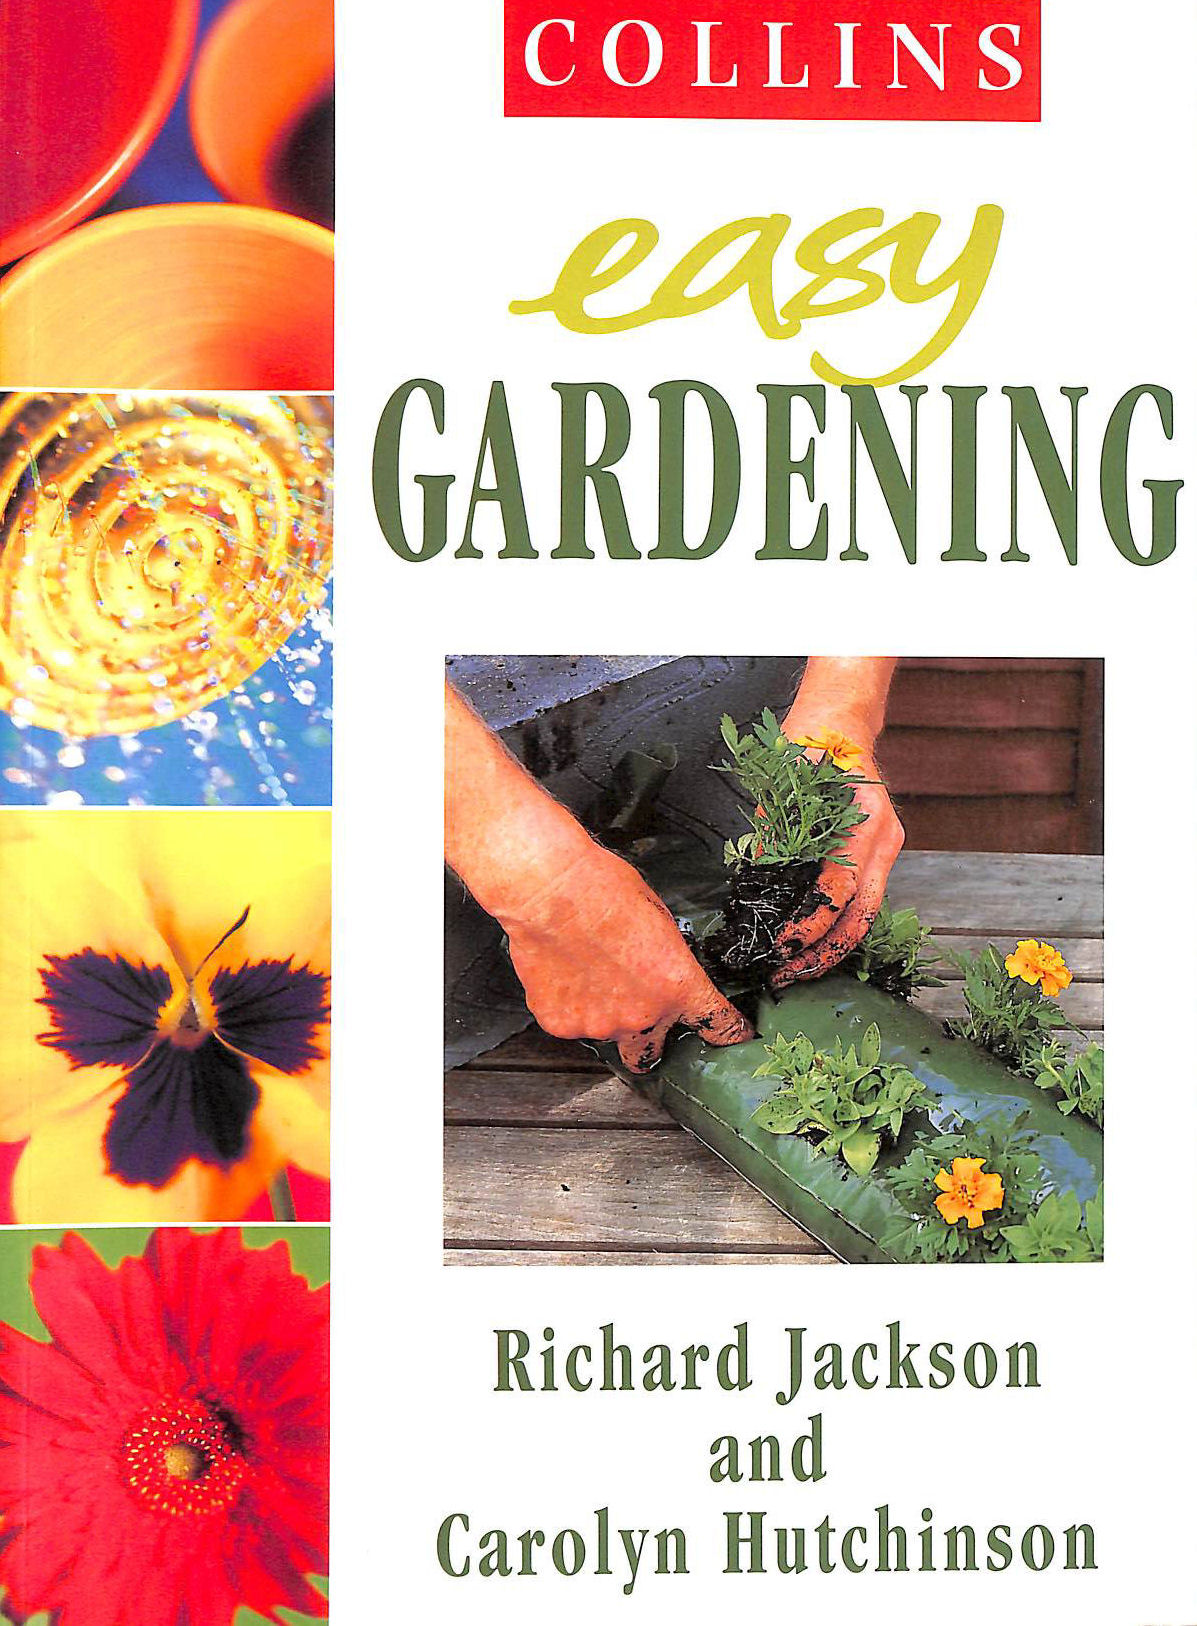 Image for Collins Easy Gardening